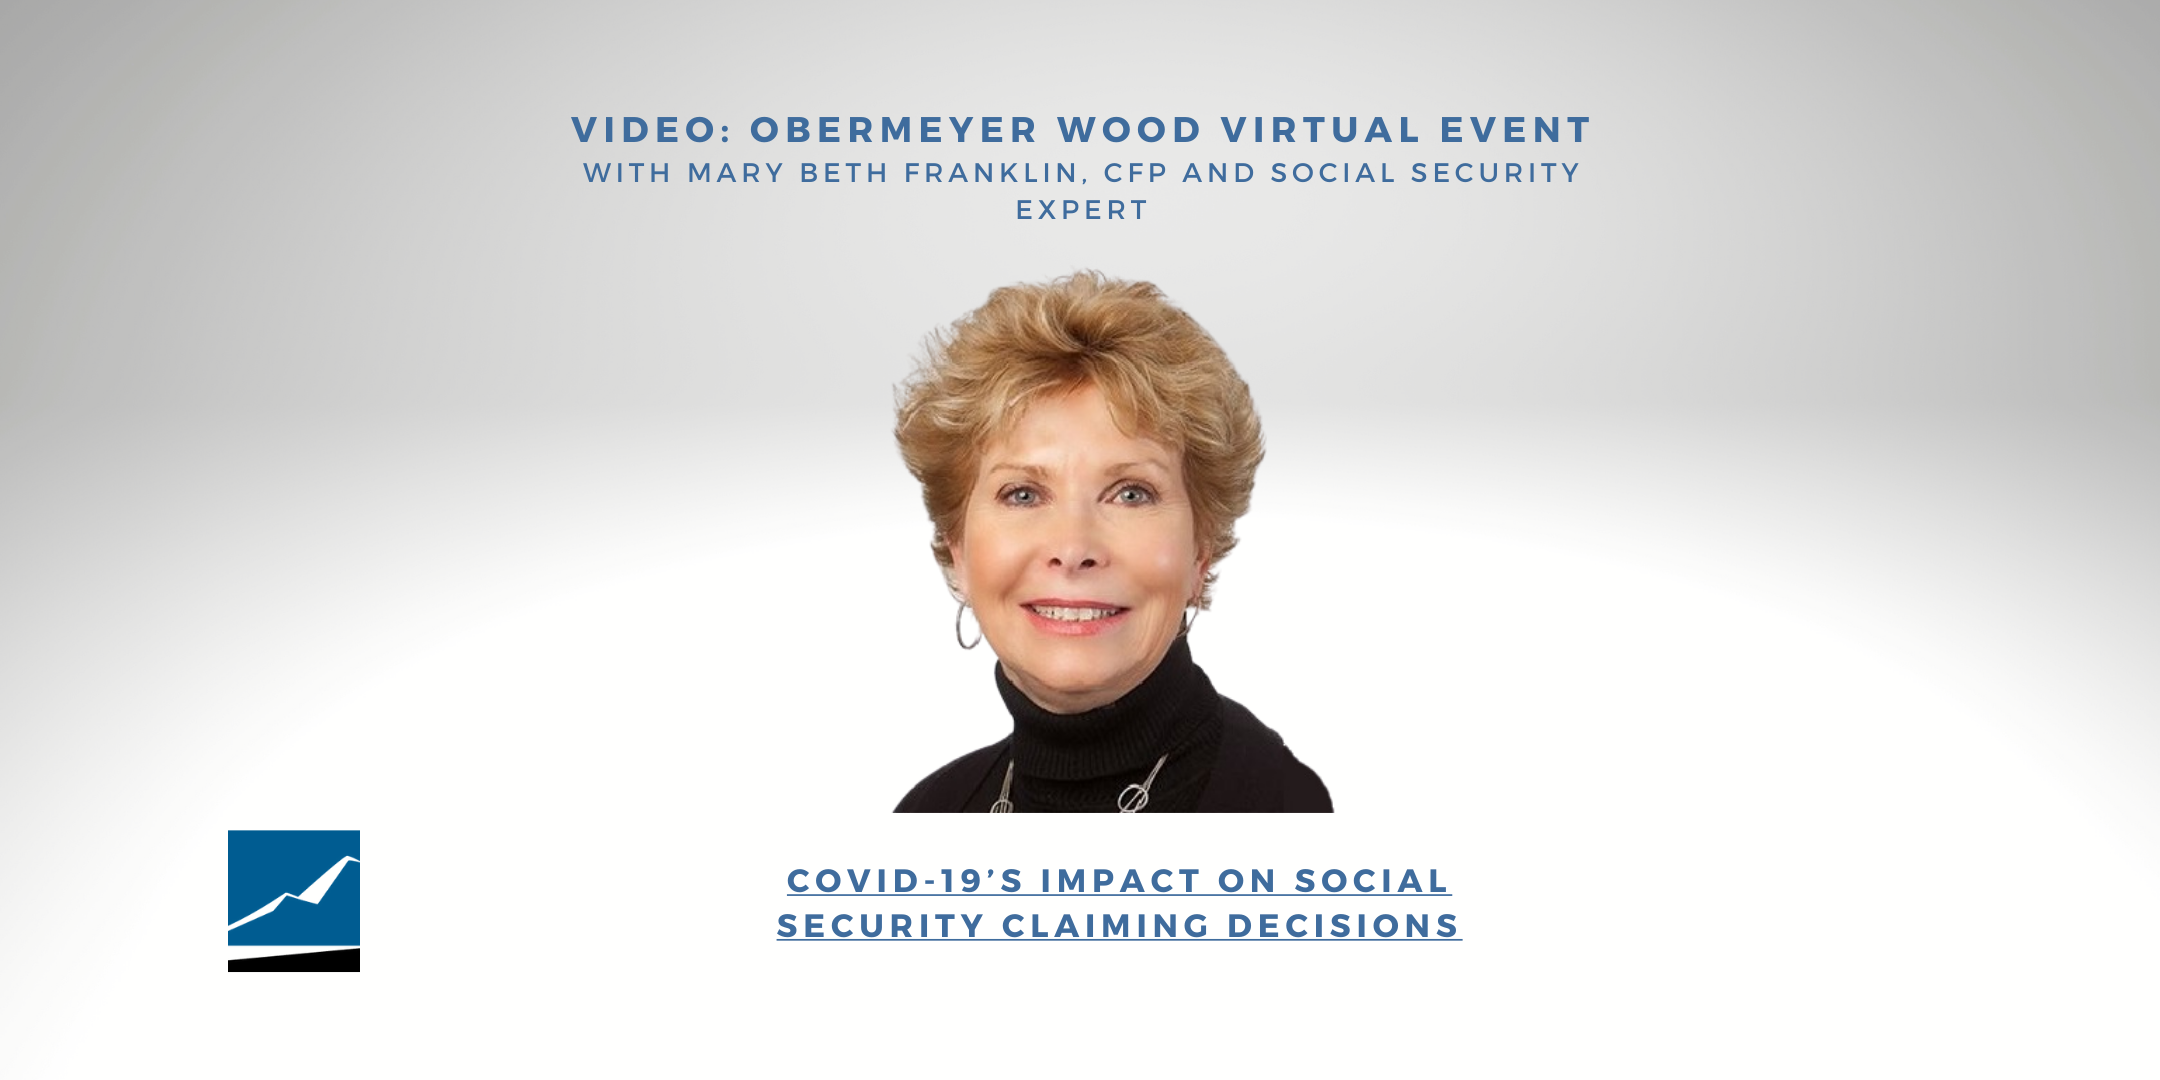 Video: February 2021 Virtual Event with Social Security Expert Mary Beth Franklin, CFP Thumbnail